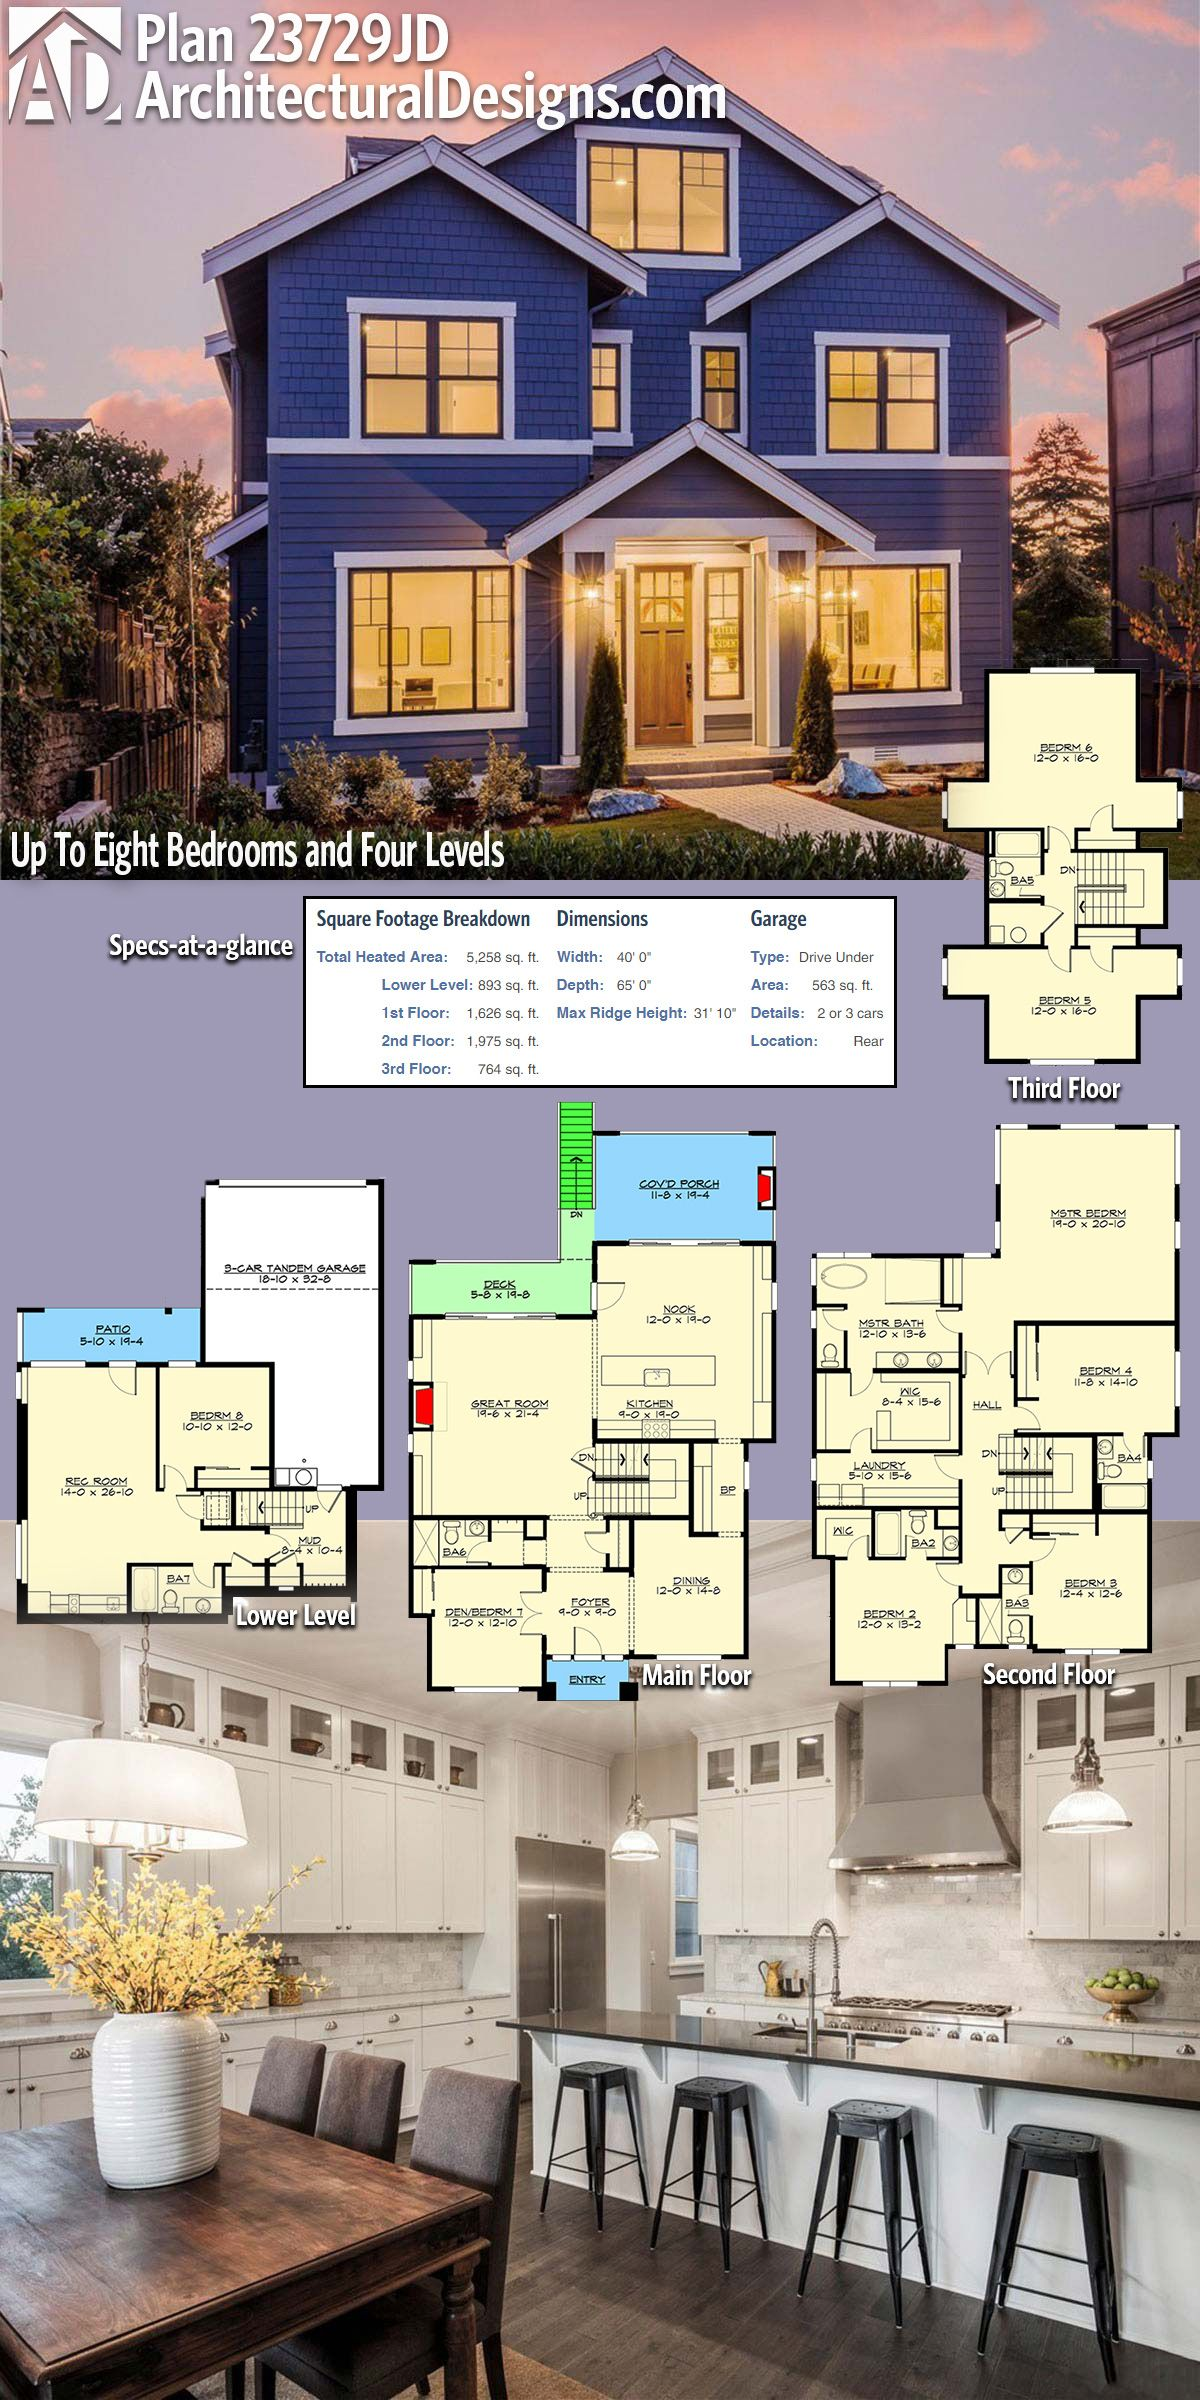 Plan 23729JD Up To Eight Bedrooms